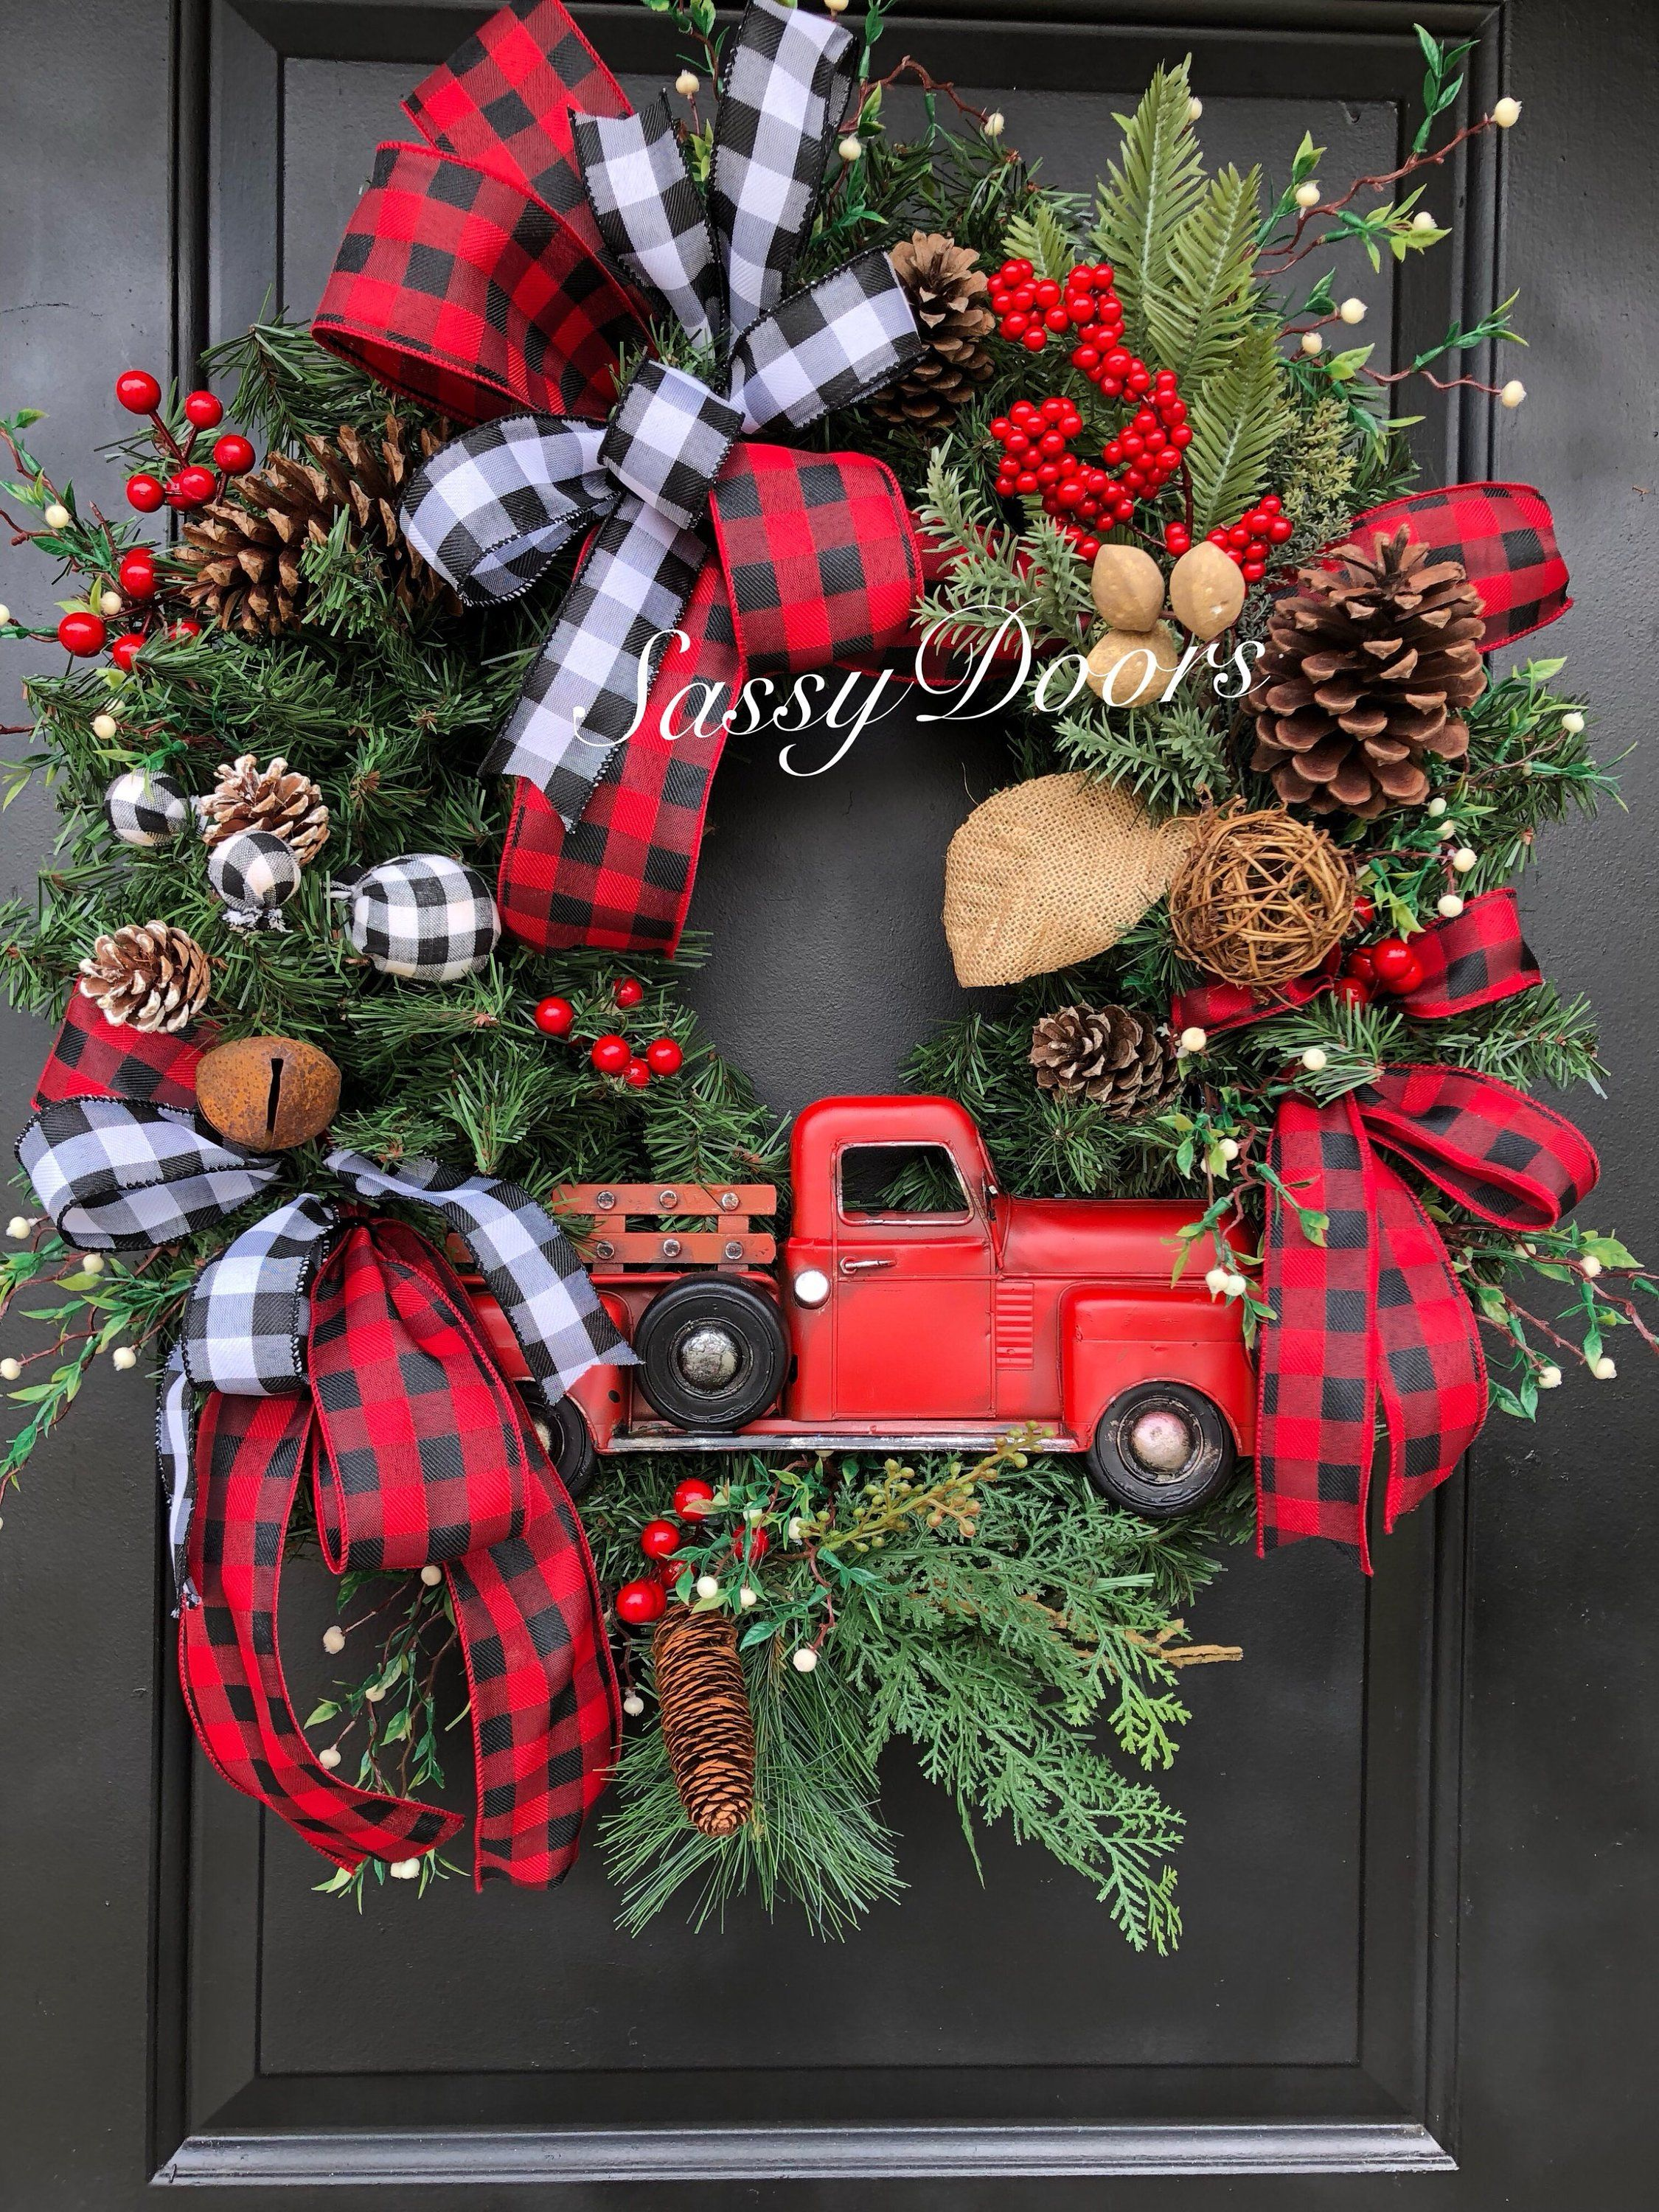 Red Truck Wreath Buffalo Plaid Wreath Red Truck Christmas Wreath Rustic Christmas Wr Outside Christmas Decorations Rustic Christmas Wreath Christmas Wreaths